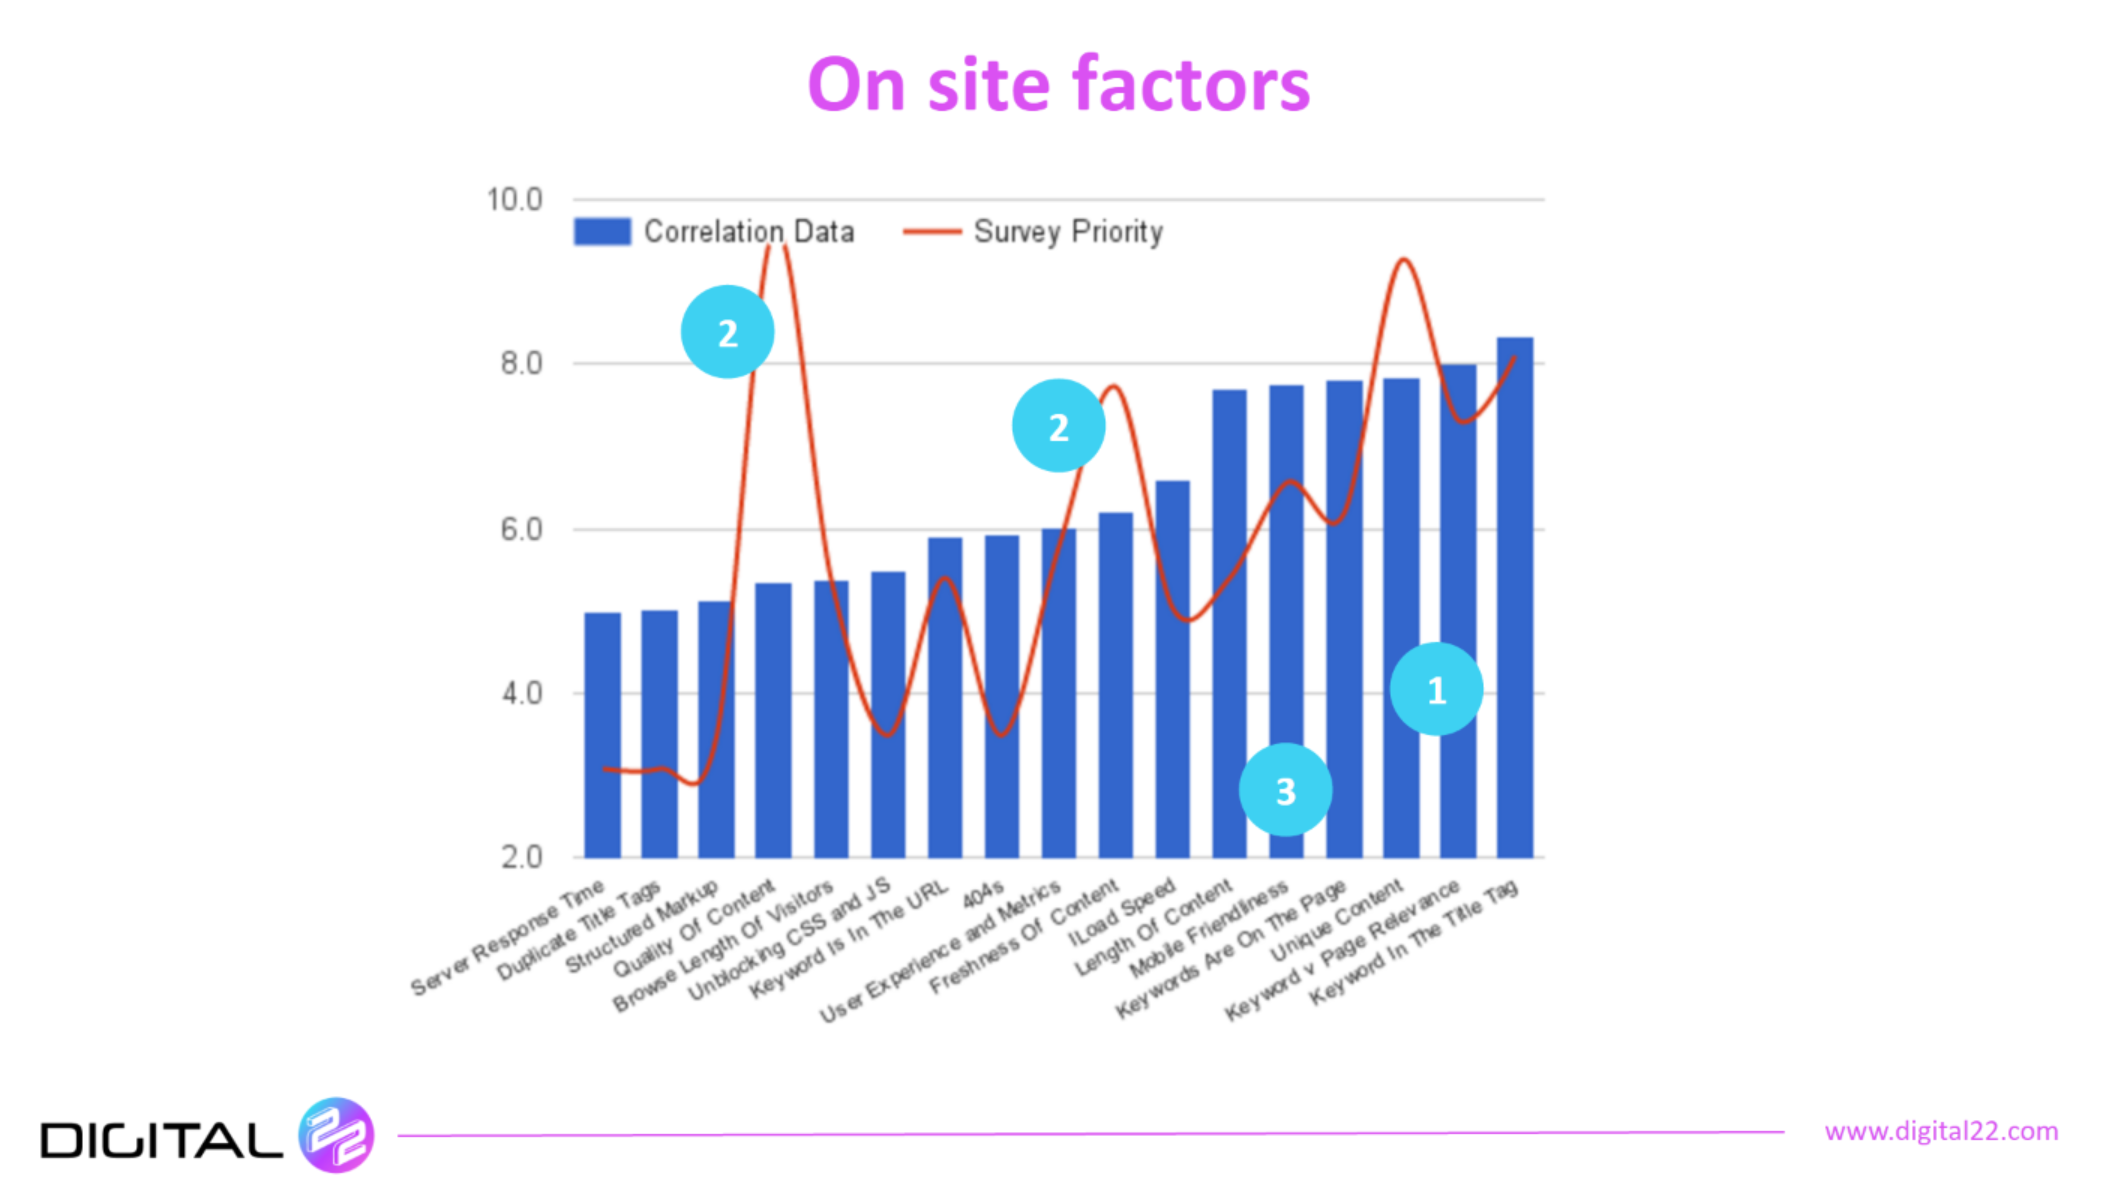 on site factors of leading sites